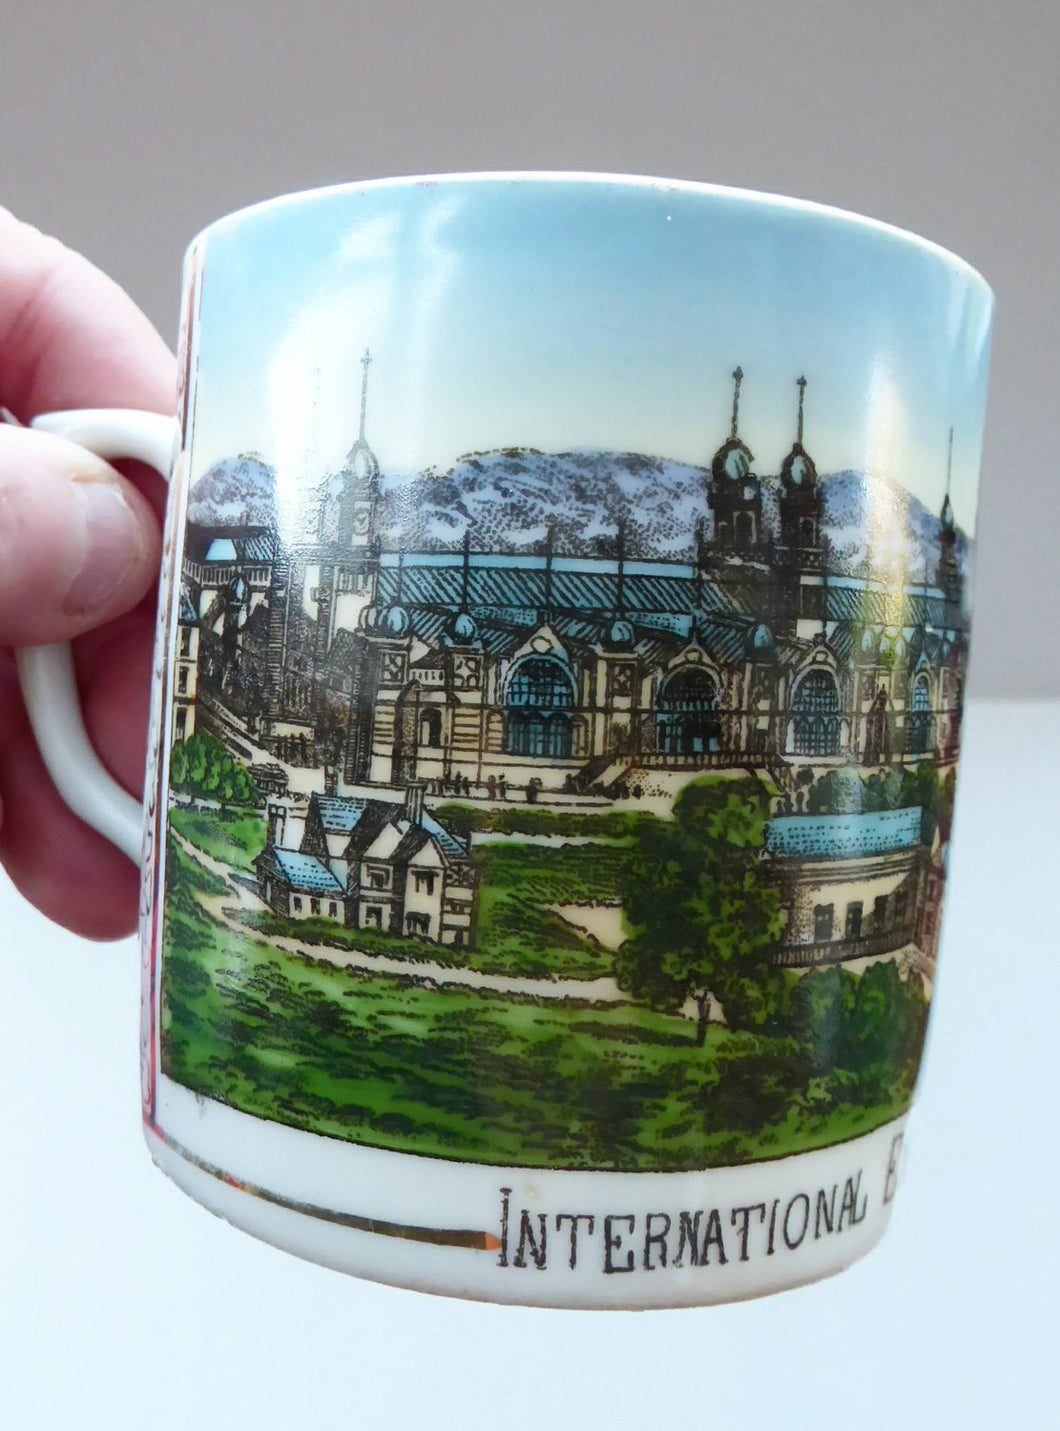 SCOTTISH HISTORY. RARE 1888 Glasgow International Exhibition Ceramic Souvenir Mug